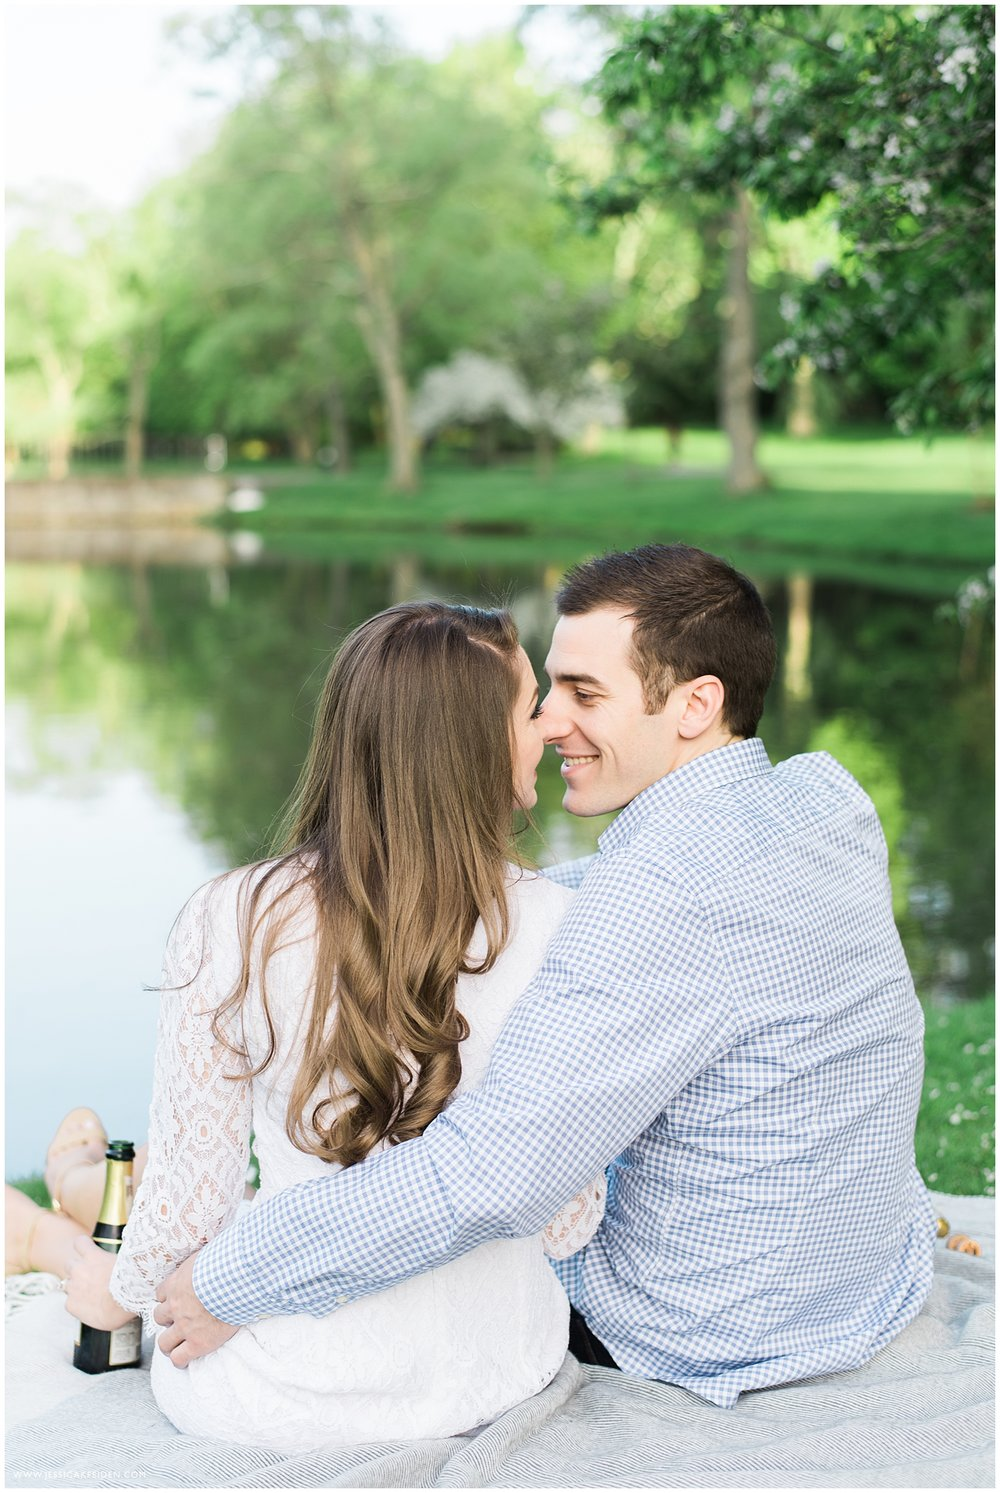 Jessica K Feiden Photography_Larz Anderson Park Engagement Session Photographer_0007.jpg